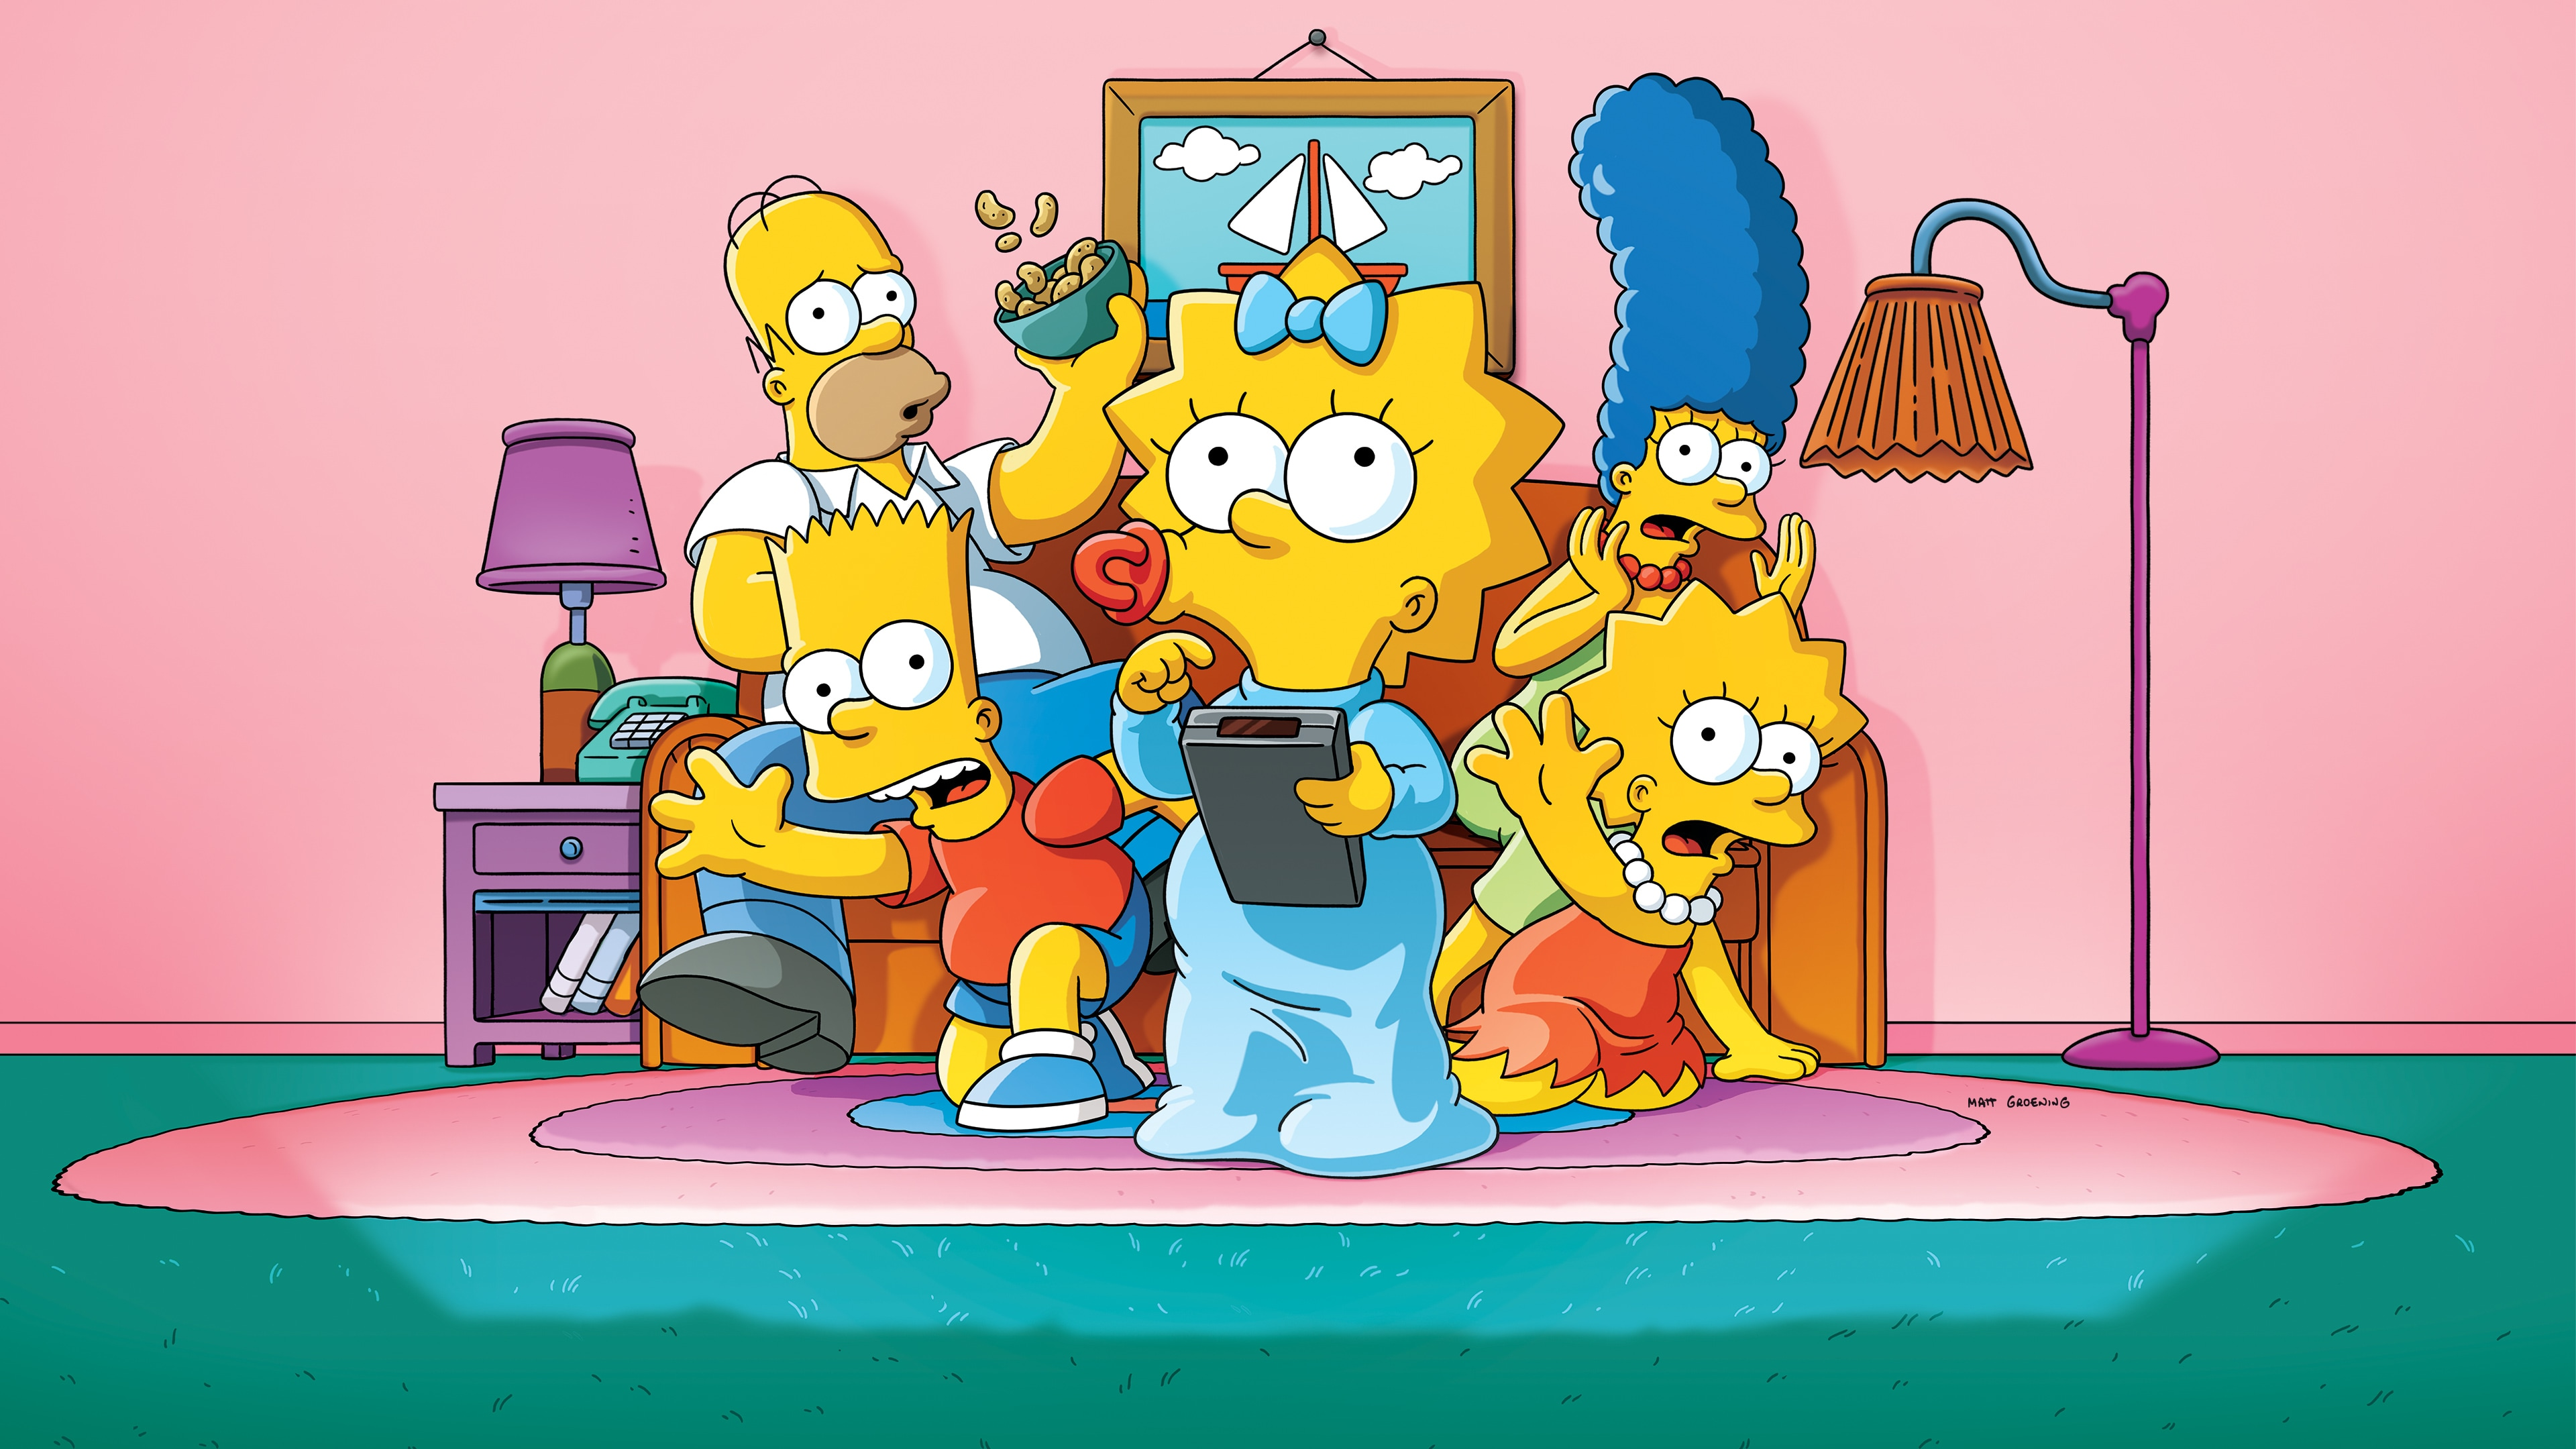 The Simpsons Christmas Episodes.Watch Full Episodes The Simpsons On Fox